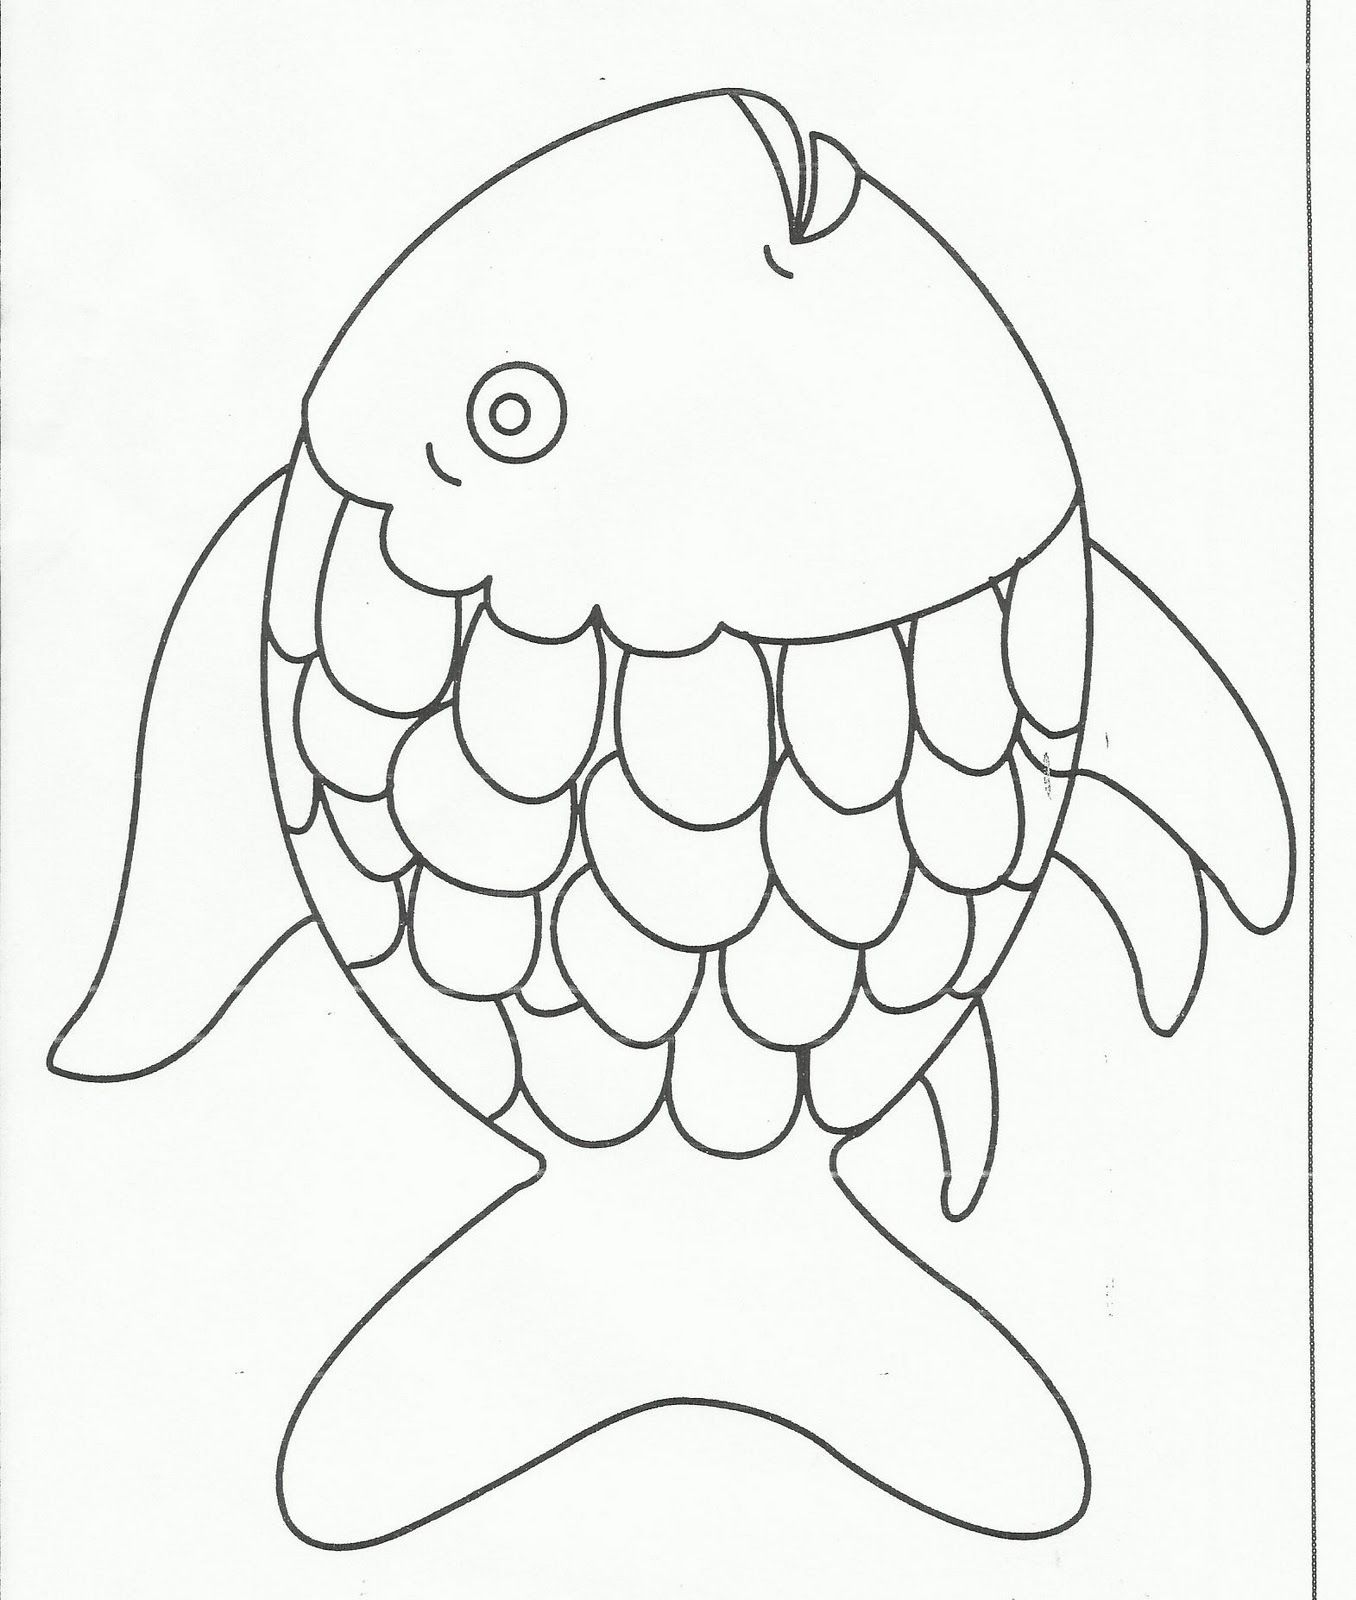 rainbow fish coloring page - Free Large Images | Camp4 ...